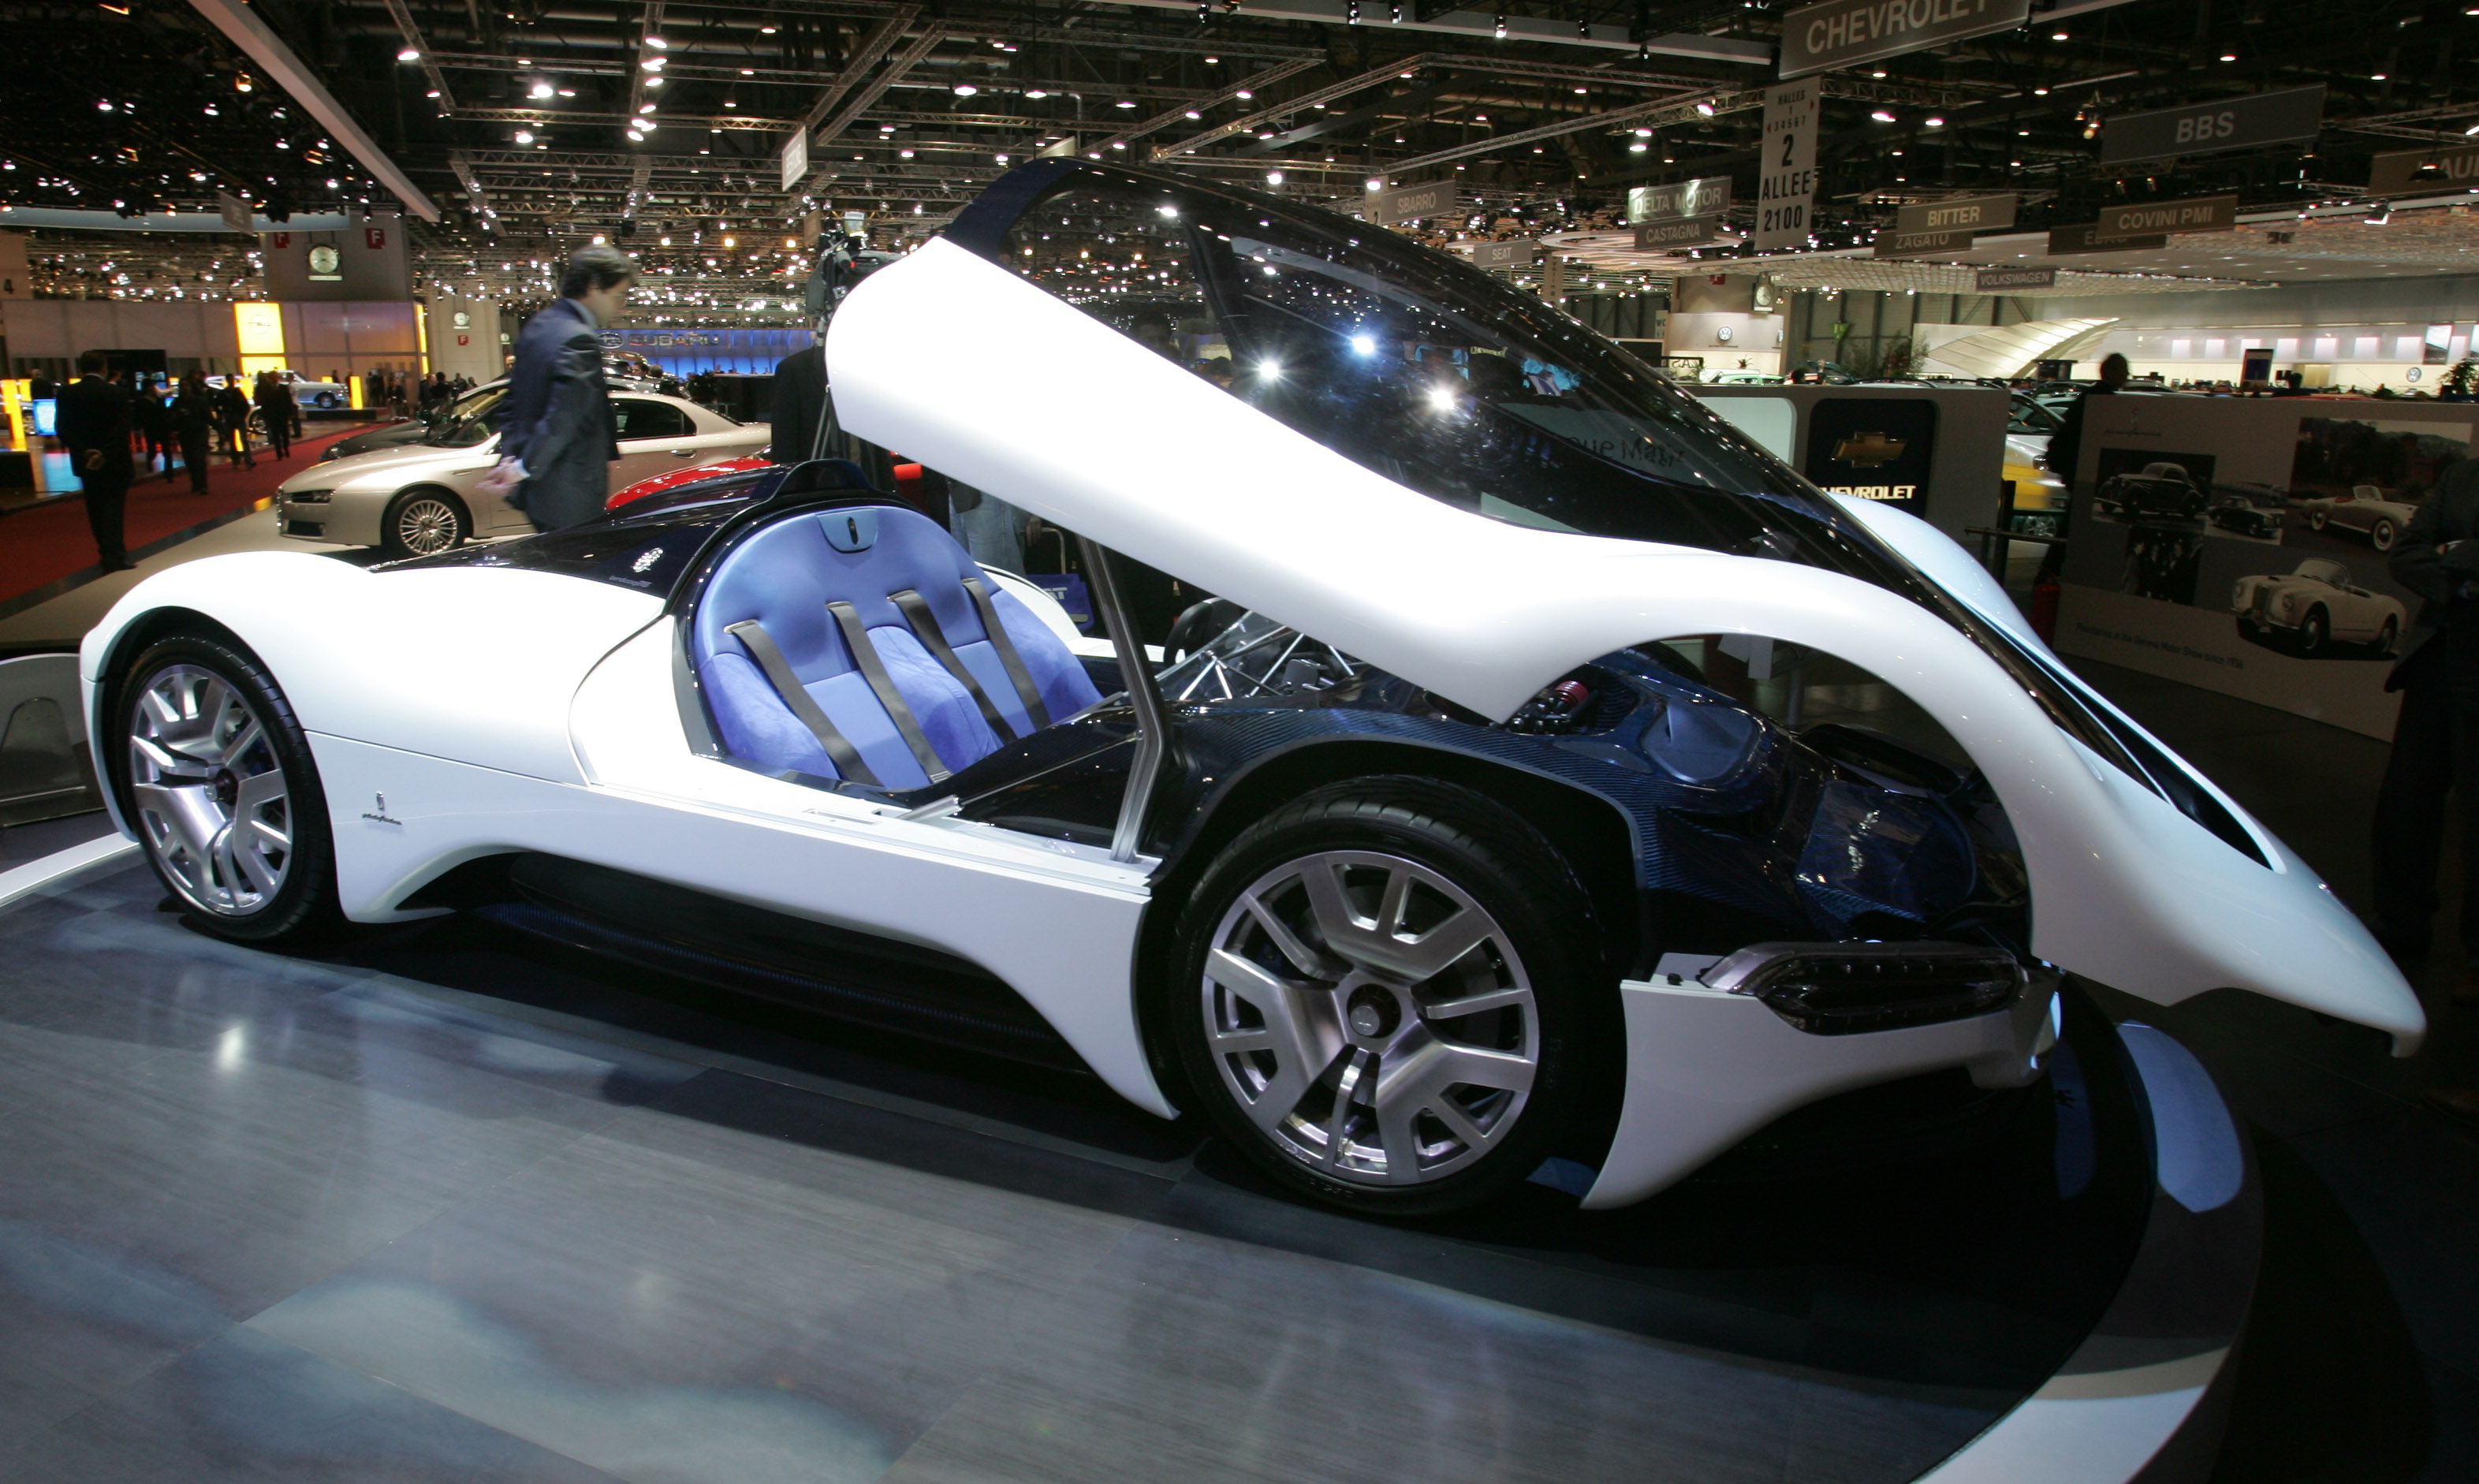 A Maserati Birdcage 75th concept car is on display during its world debut at the Geneva Motor Show.